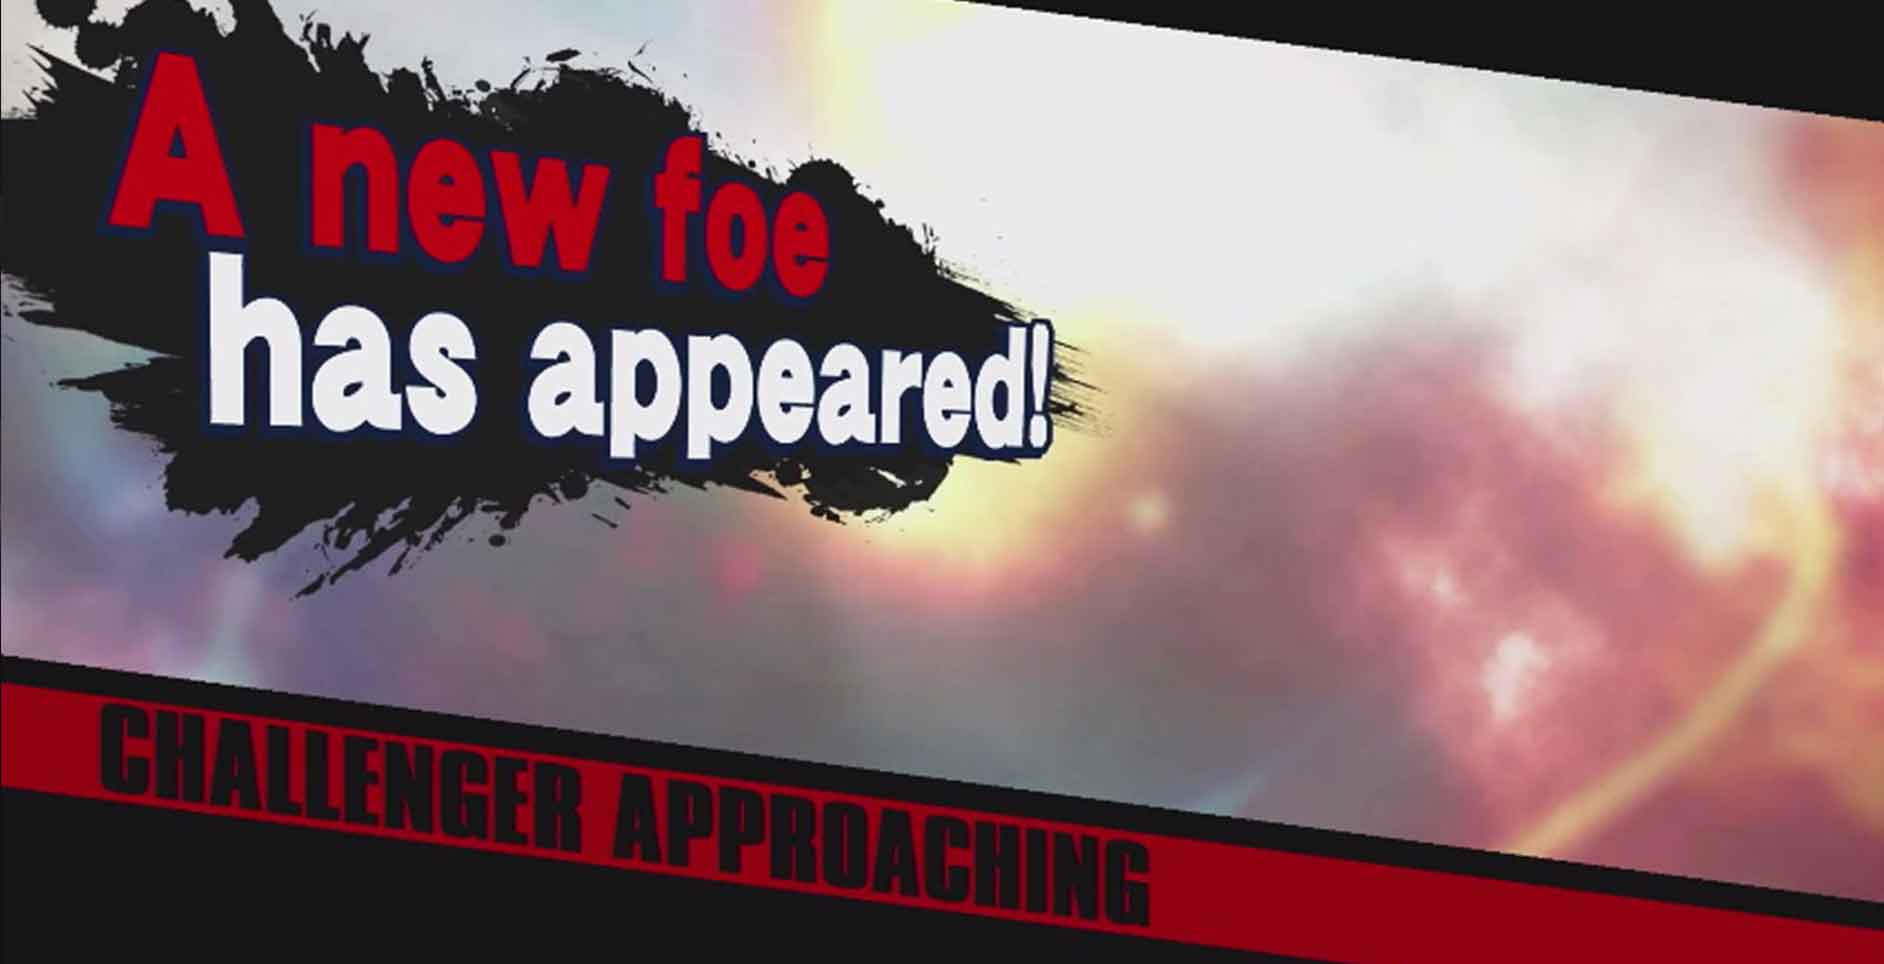 The Next Super Smash Bros Character Reveal Has Seemingly Leaked